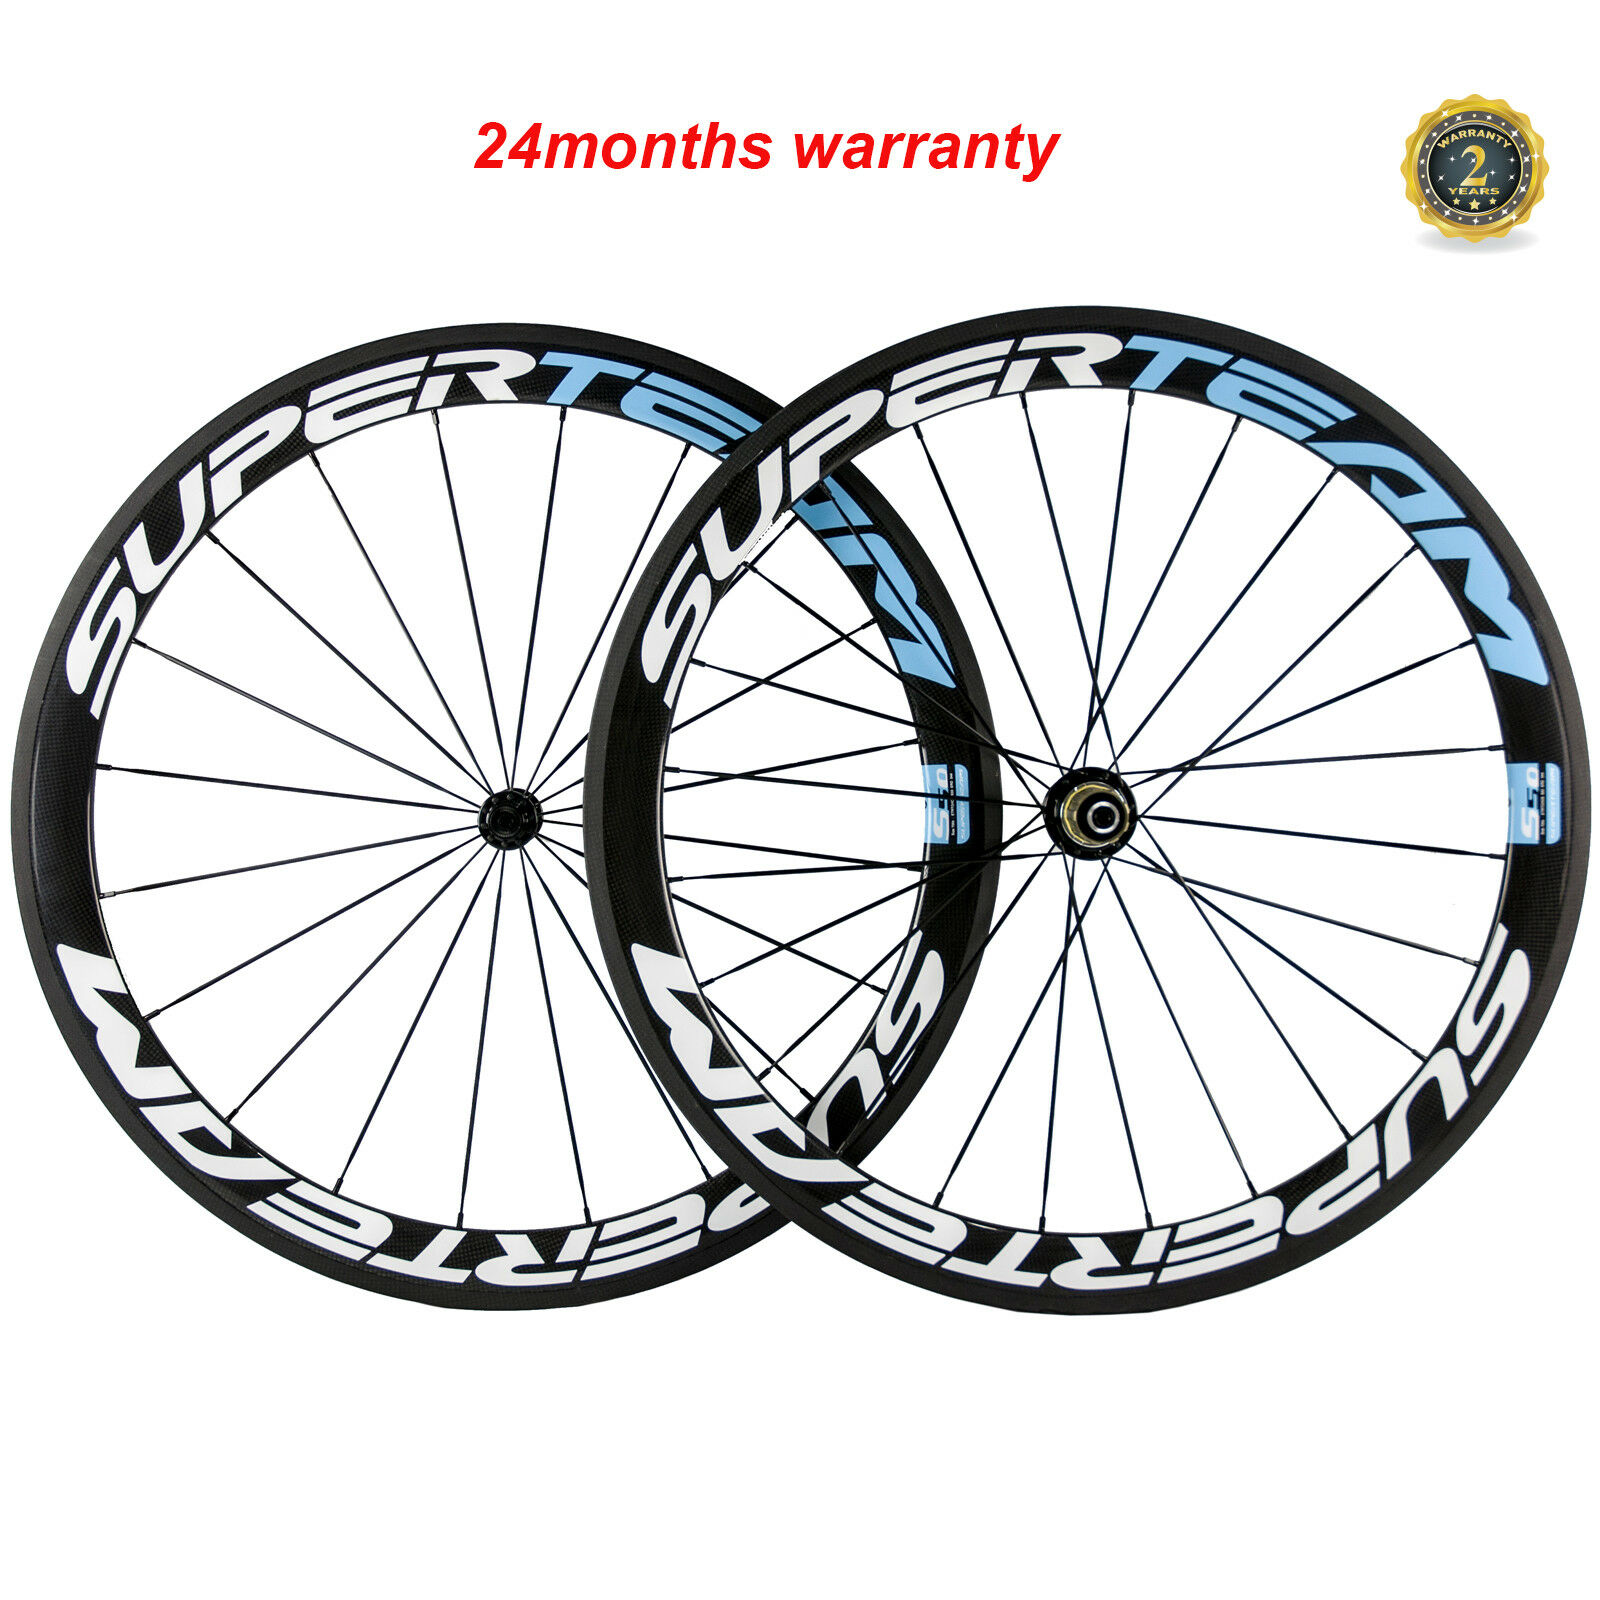 SUPERTEAM Full Carbon Road Cycling Wheelset  23mm Width 50mm Clincher Wheels R13  fashion brands